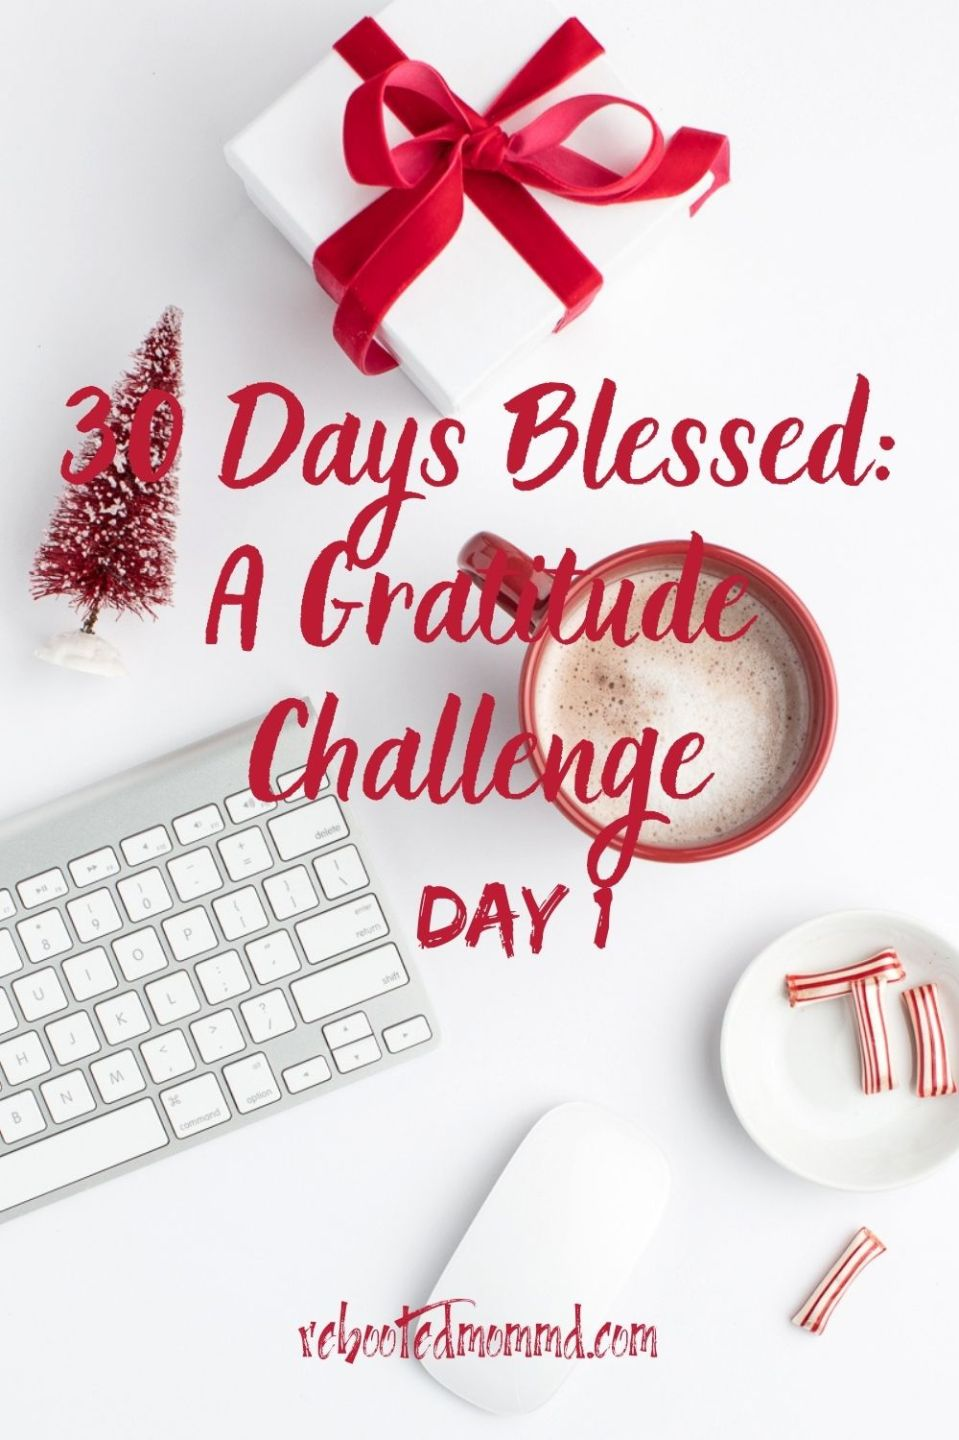 Day 1. Trying on an Attitude of Gratitude